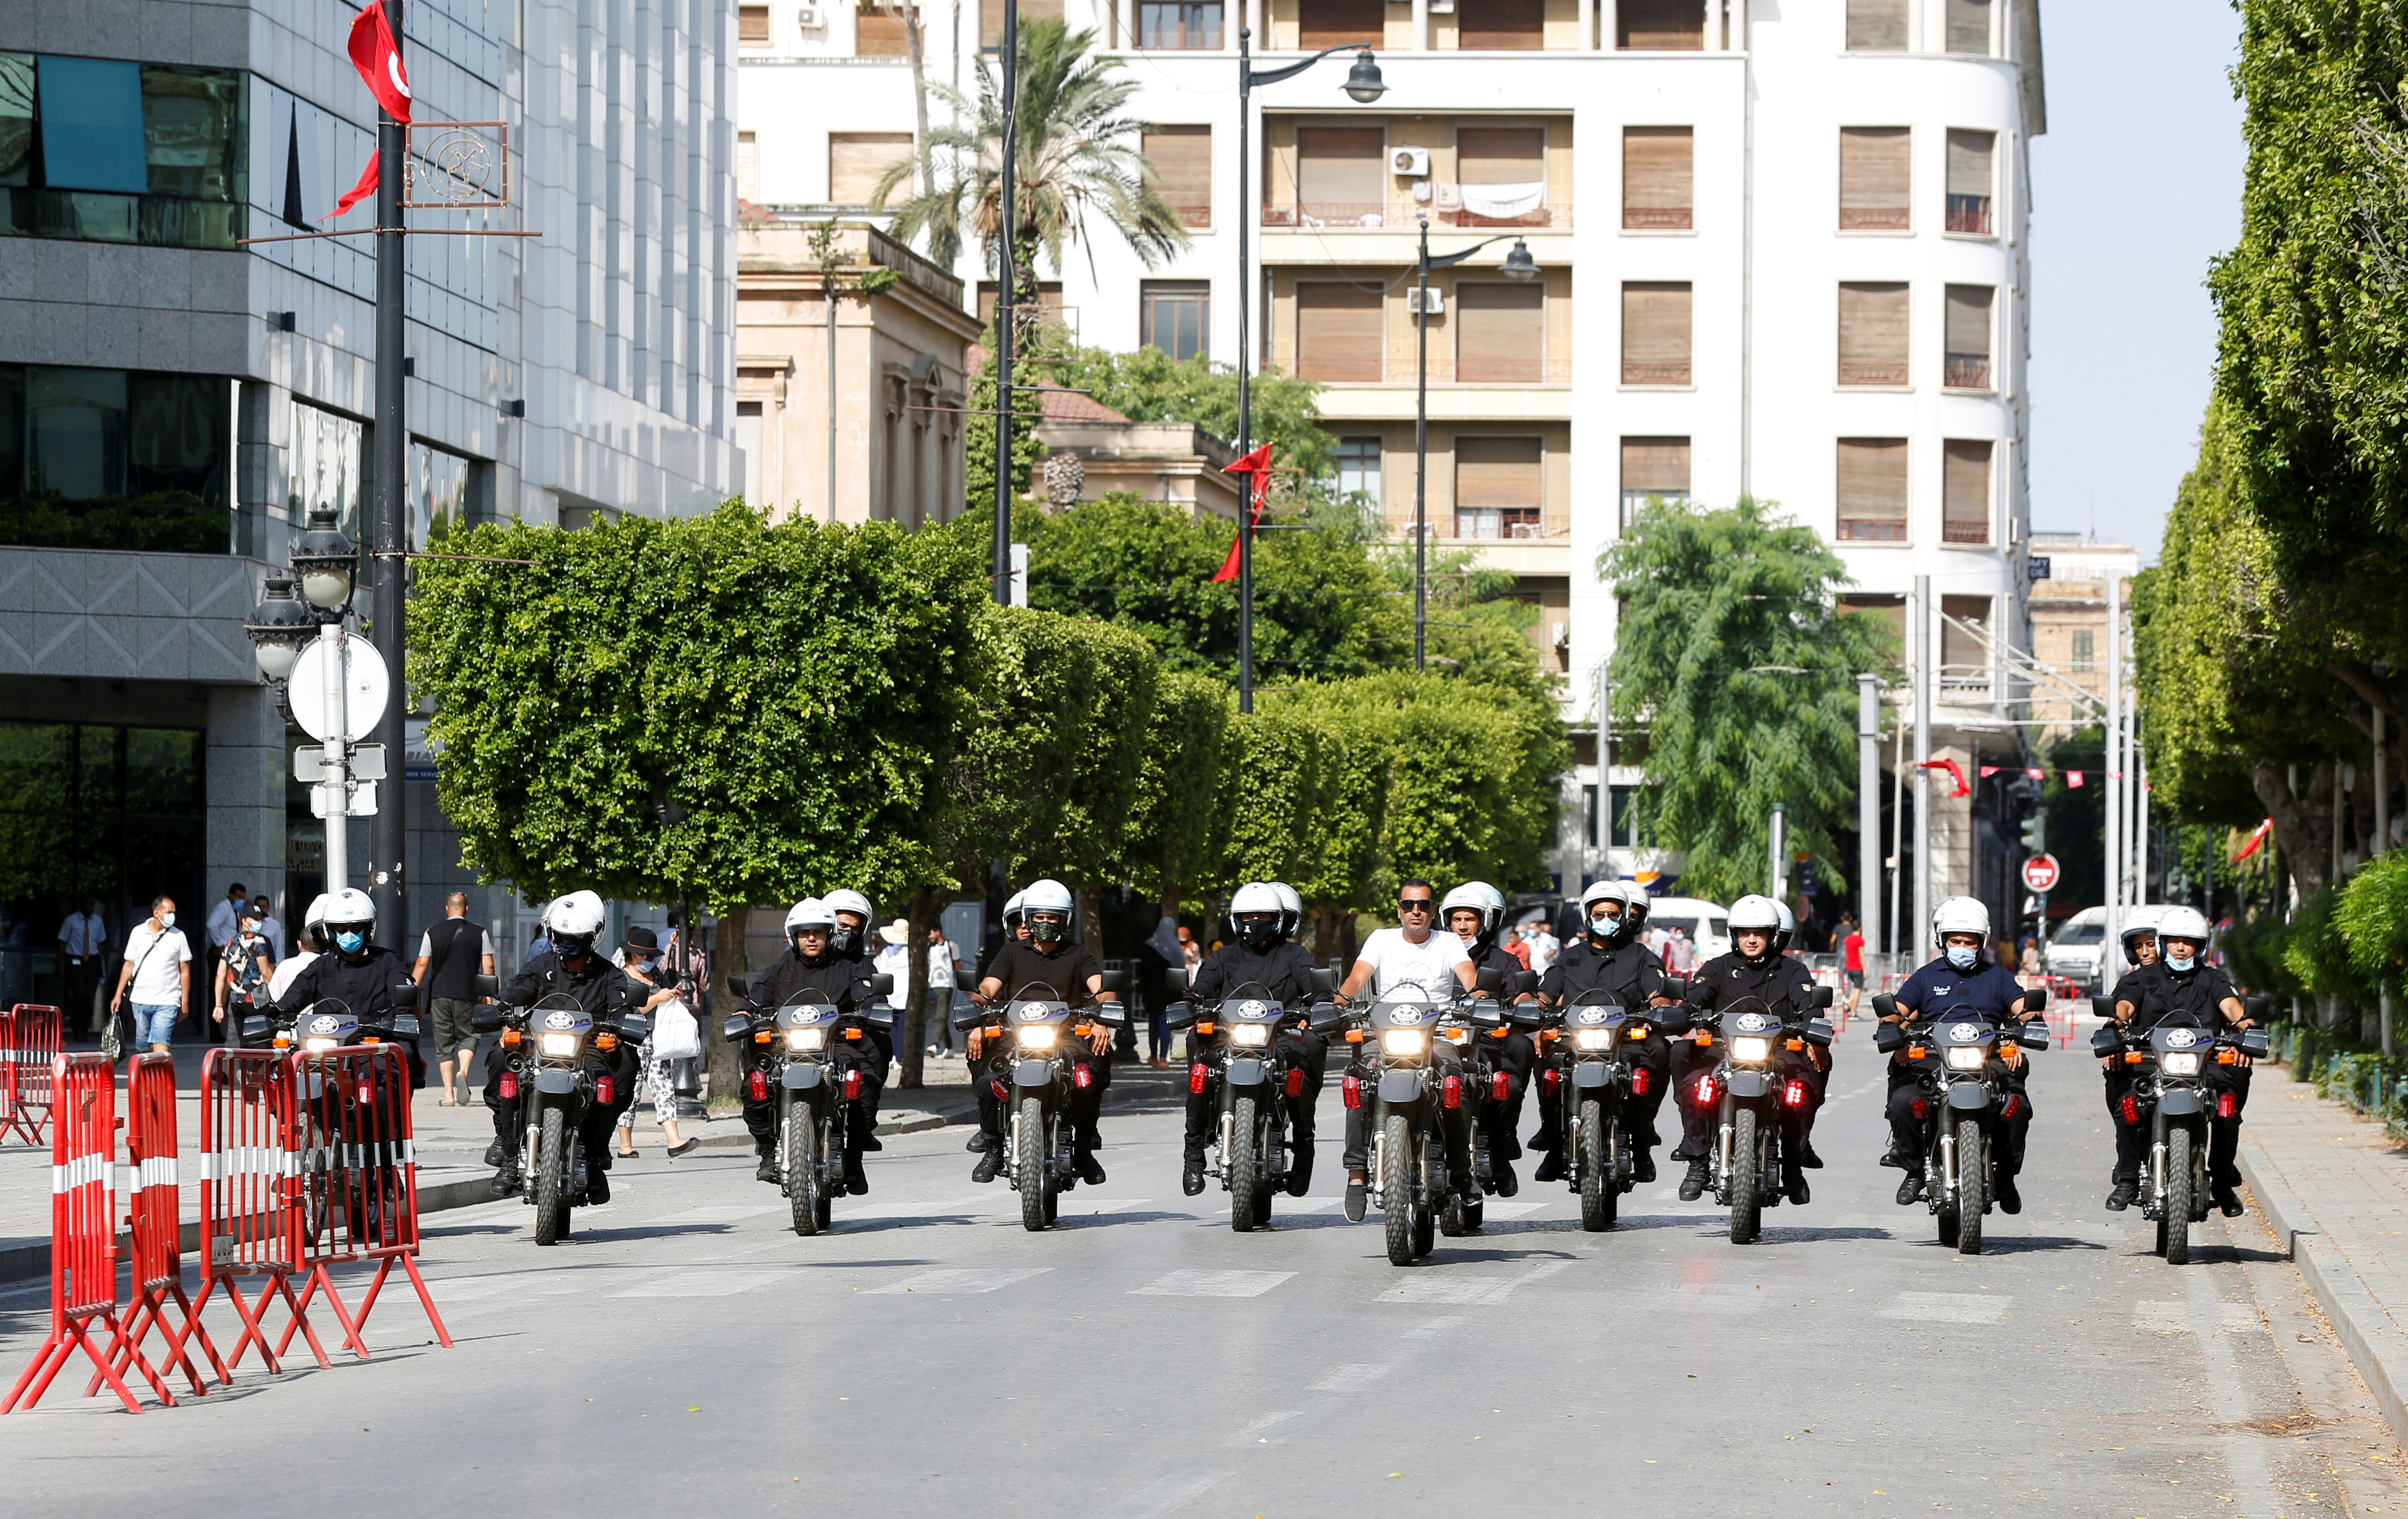 Police officers patrol a street in Tunis, Tunisia, July 28, 2021.  REUTERS/Zoubeir Souissi